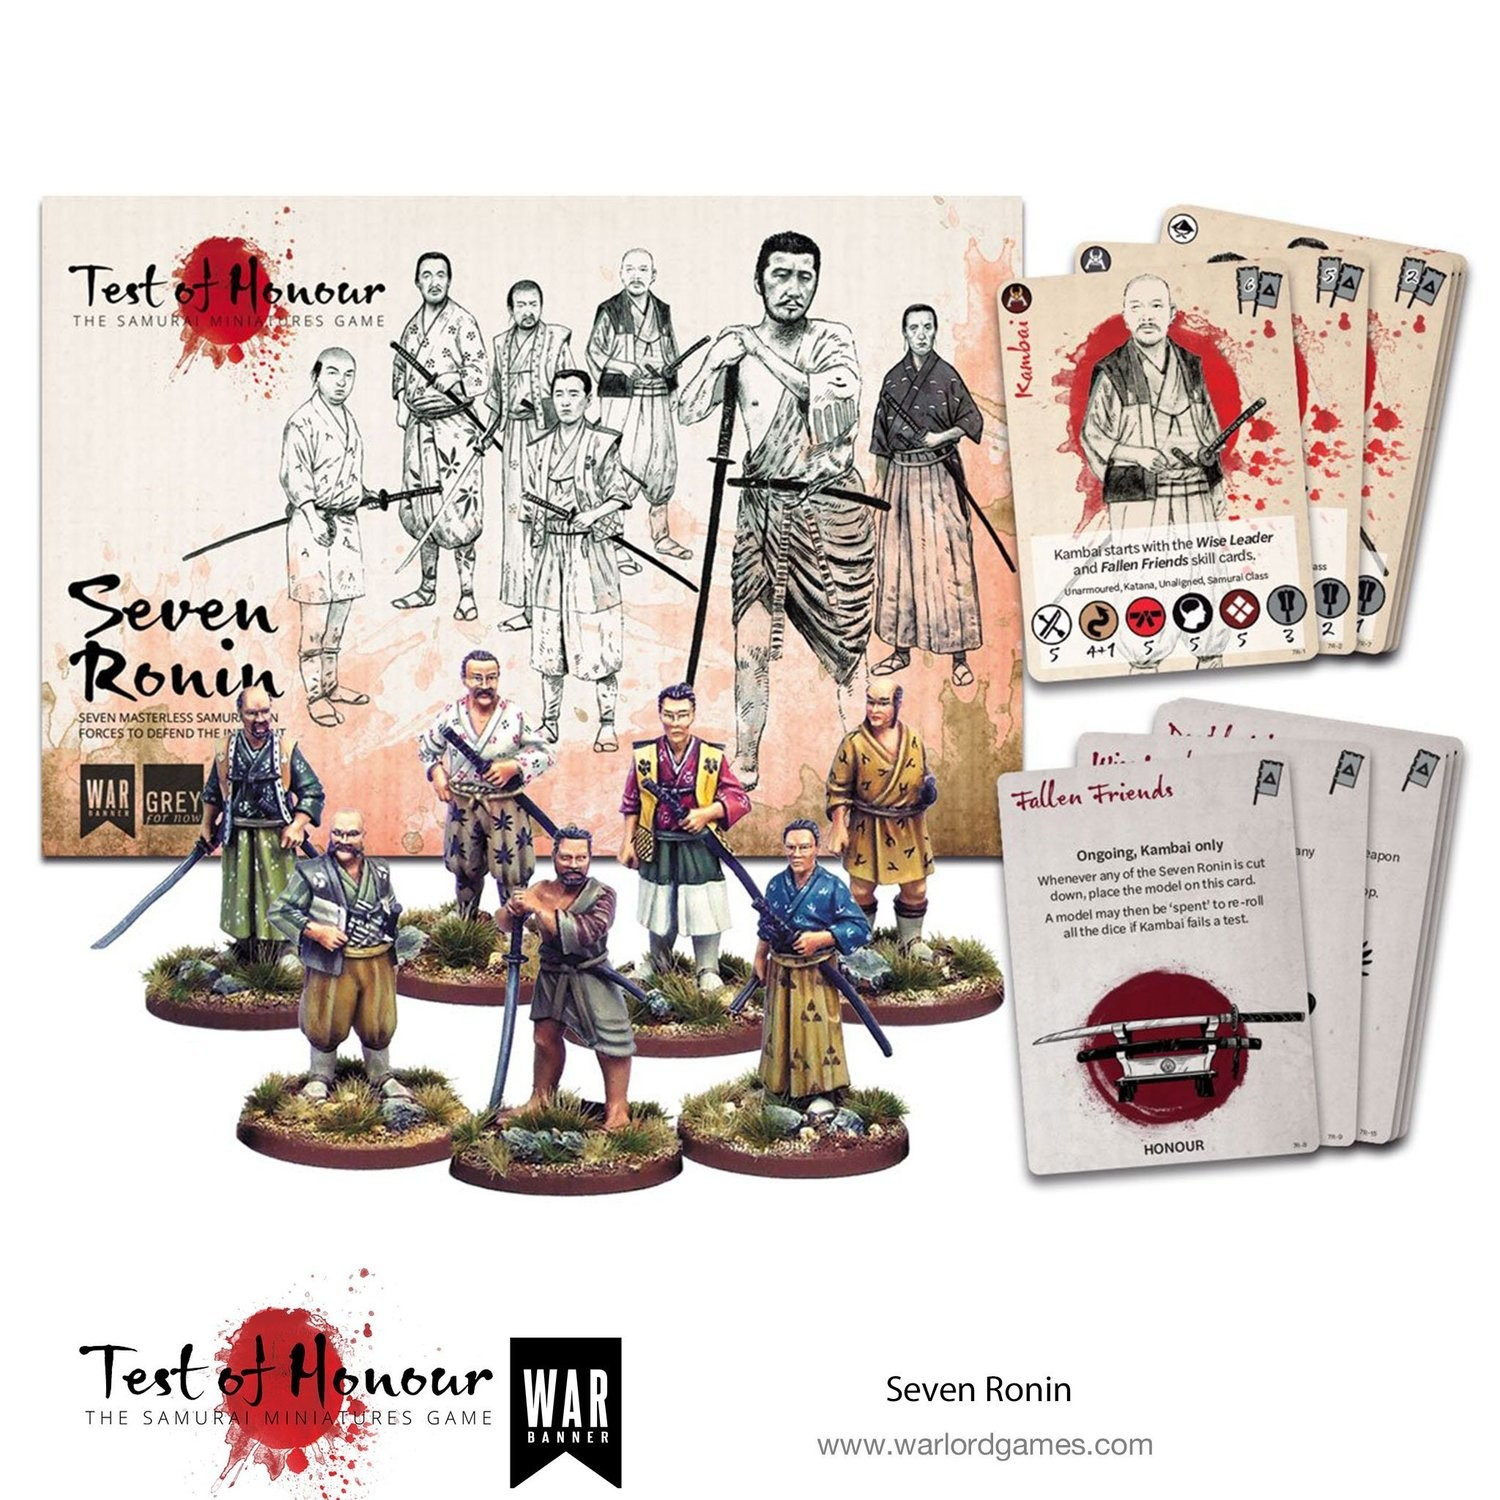 Seven Ronin - Test of Honour - Warlord Games